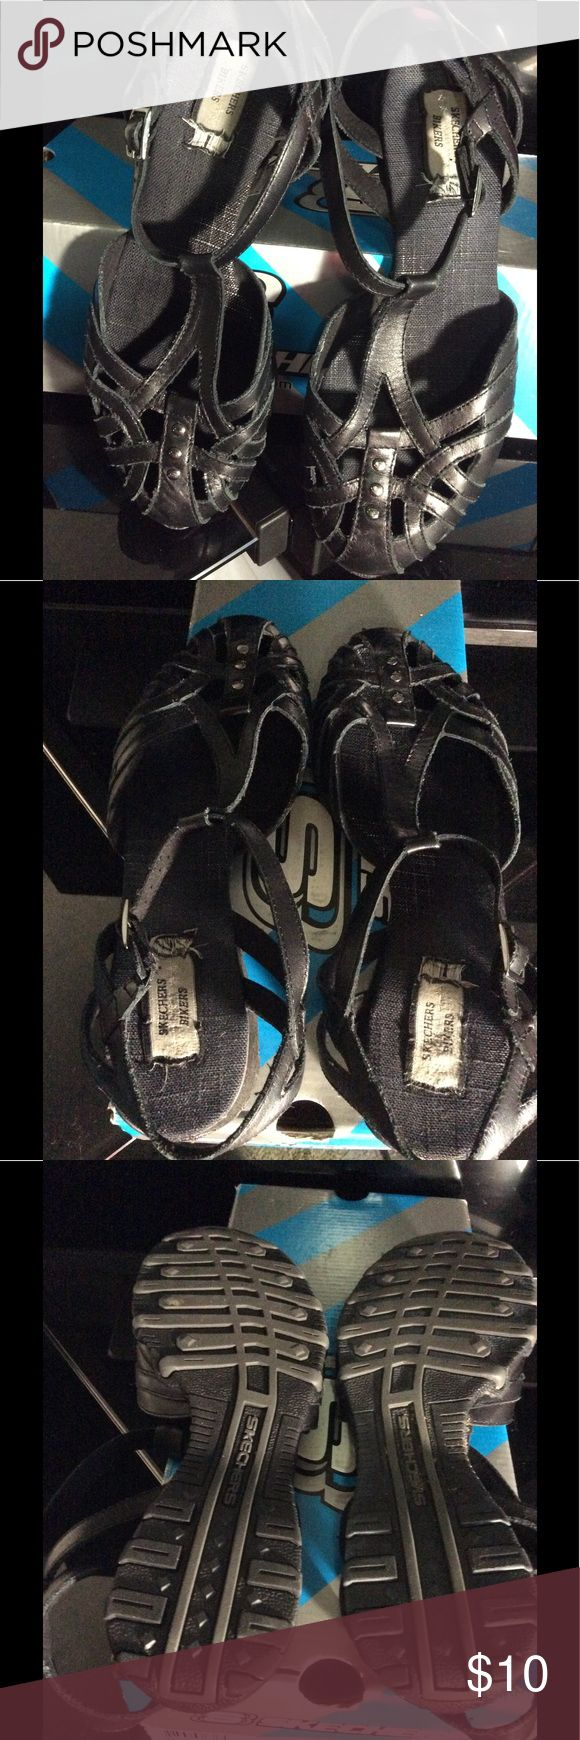 Skechers Black with sling back toe in. Very comfy for standing long periods of time. Skechers Shoes Flats & Loafers